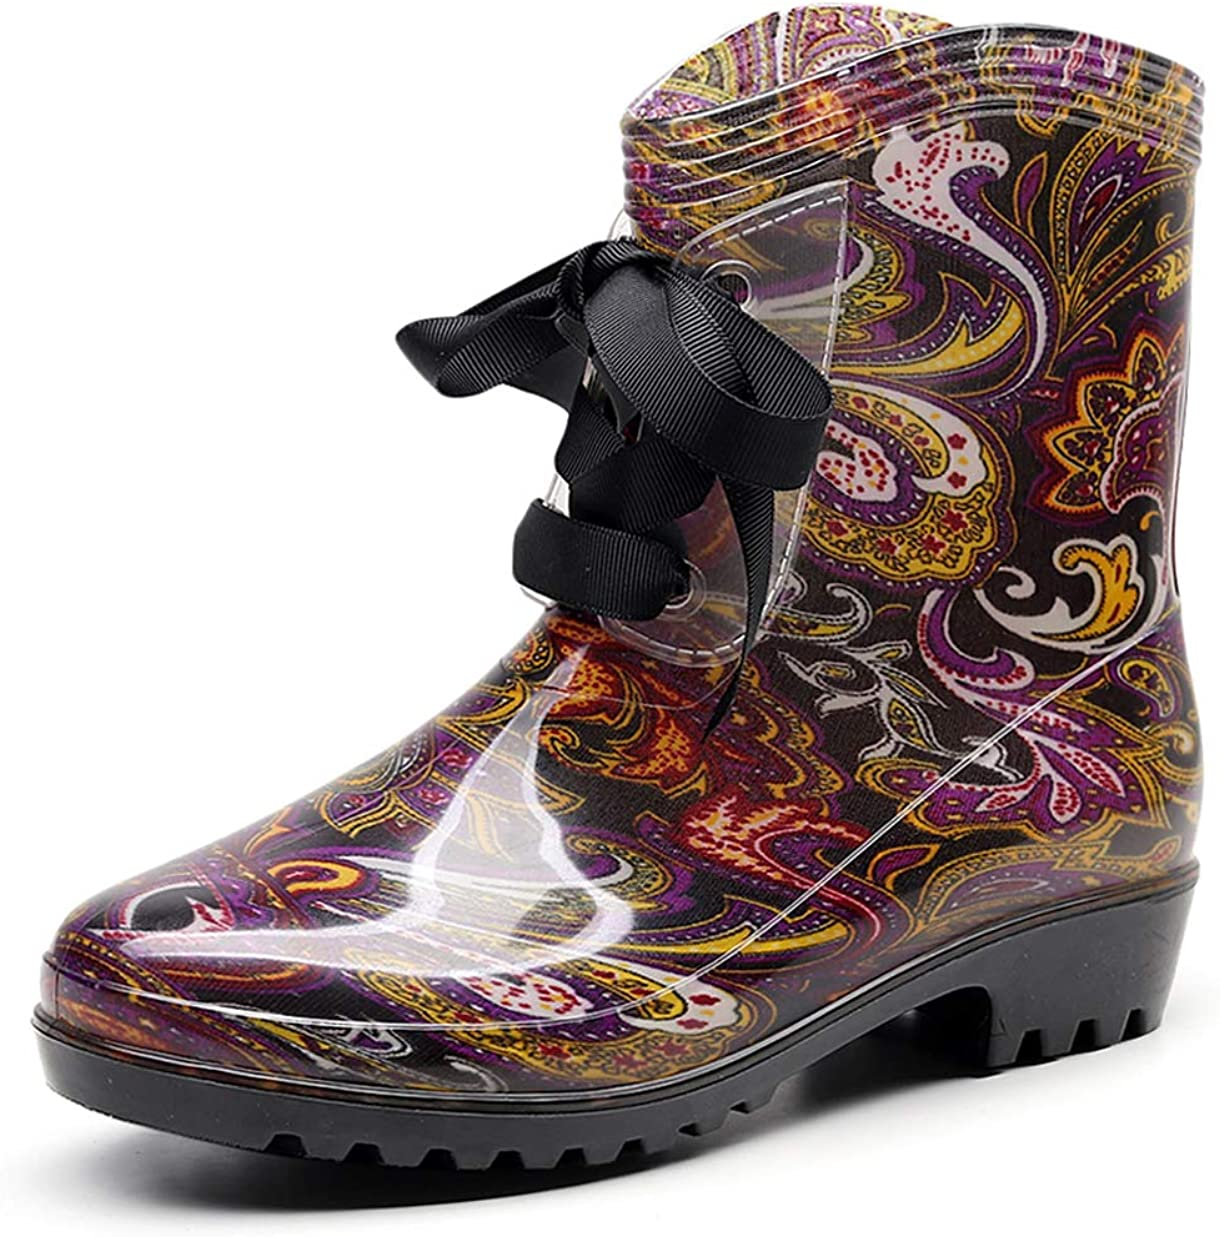 OMGard Rain Boots for Women, Floral Printed Wide Mid Calf Boots Size 8, Half Calf Rubber Low Heel Waterproof Shoes Lace Up, Comfortable Ladies Wellies Rainboots for Garden, Farm, Outdoor Footwear